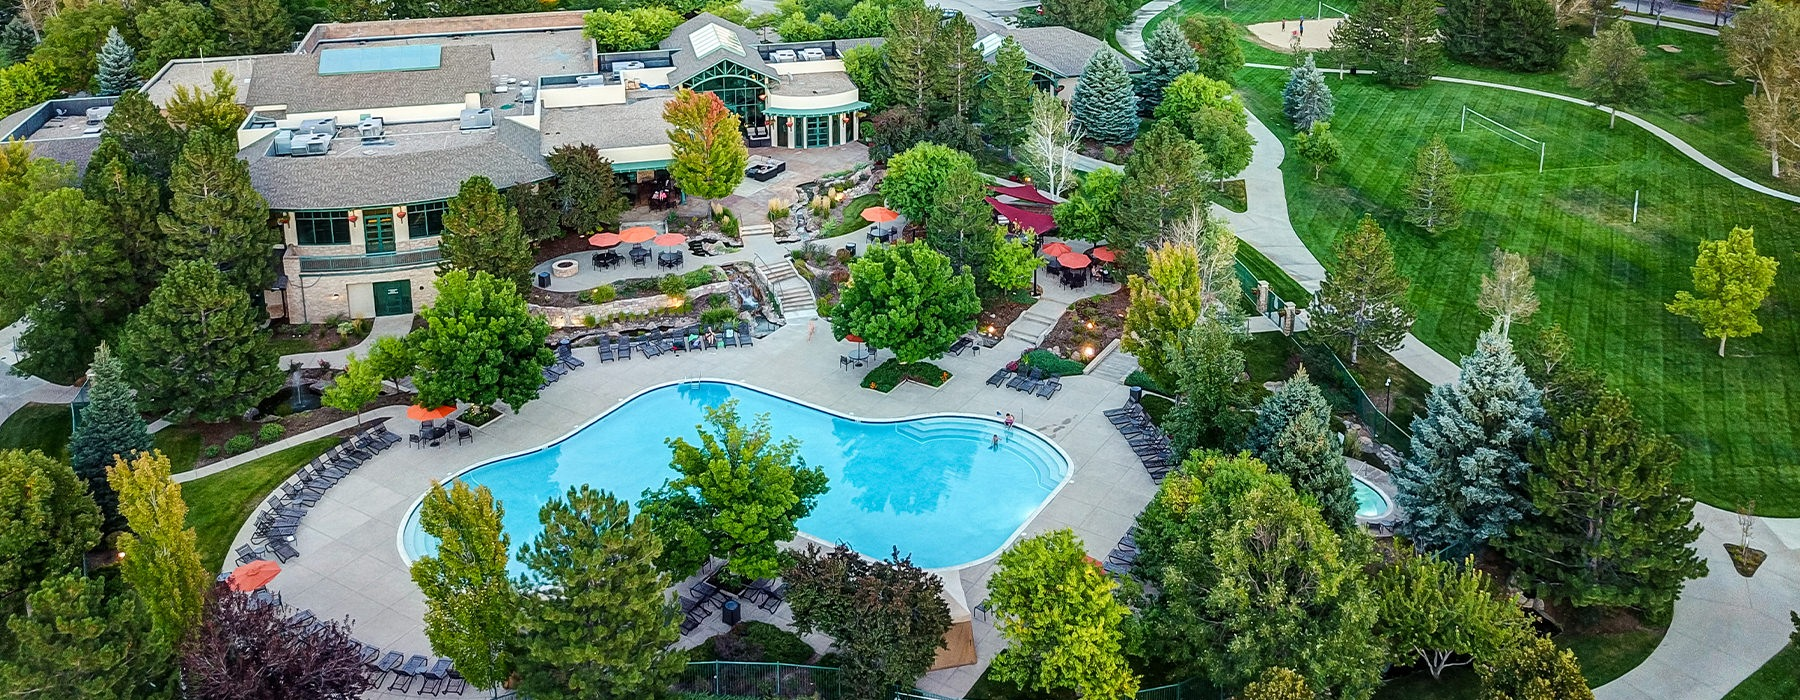 Large resort style sparkling blue swimming pool surrounded by a massive deck with plenty of seating.